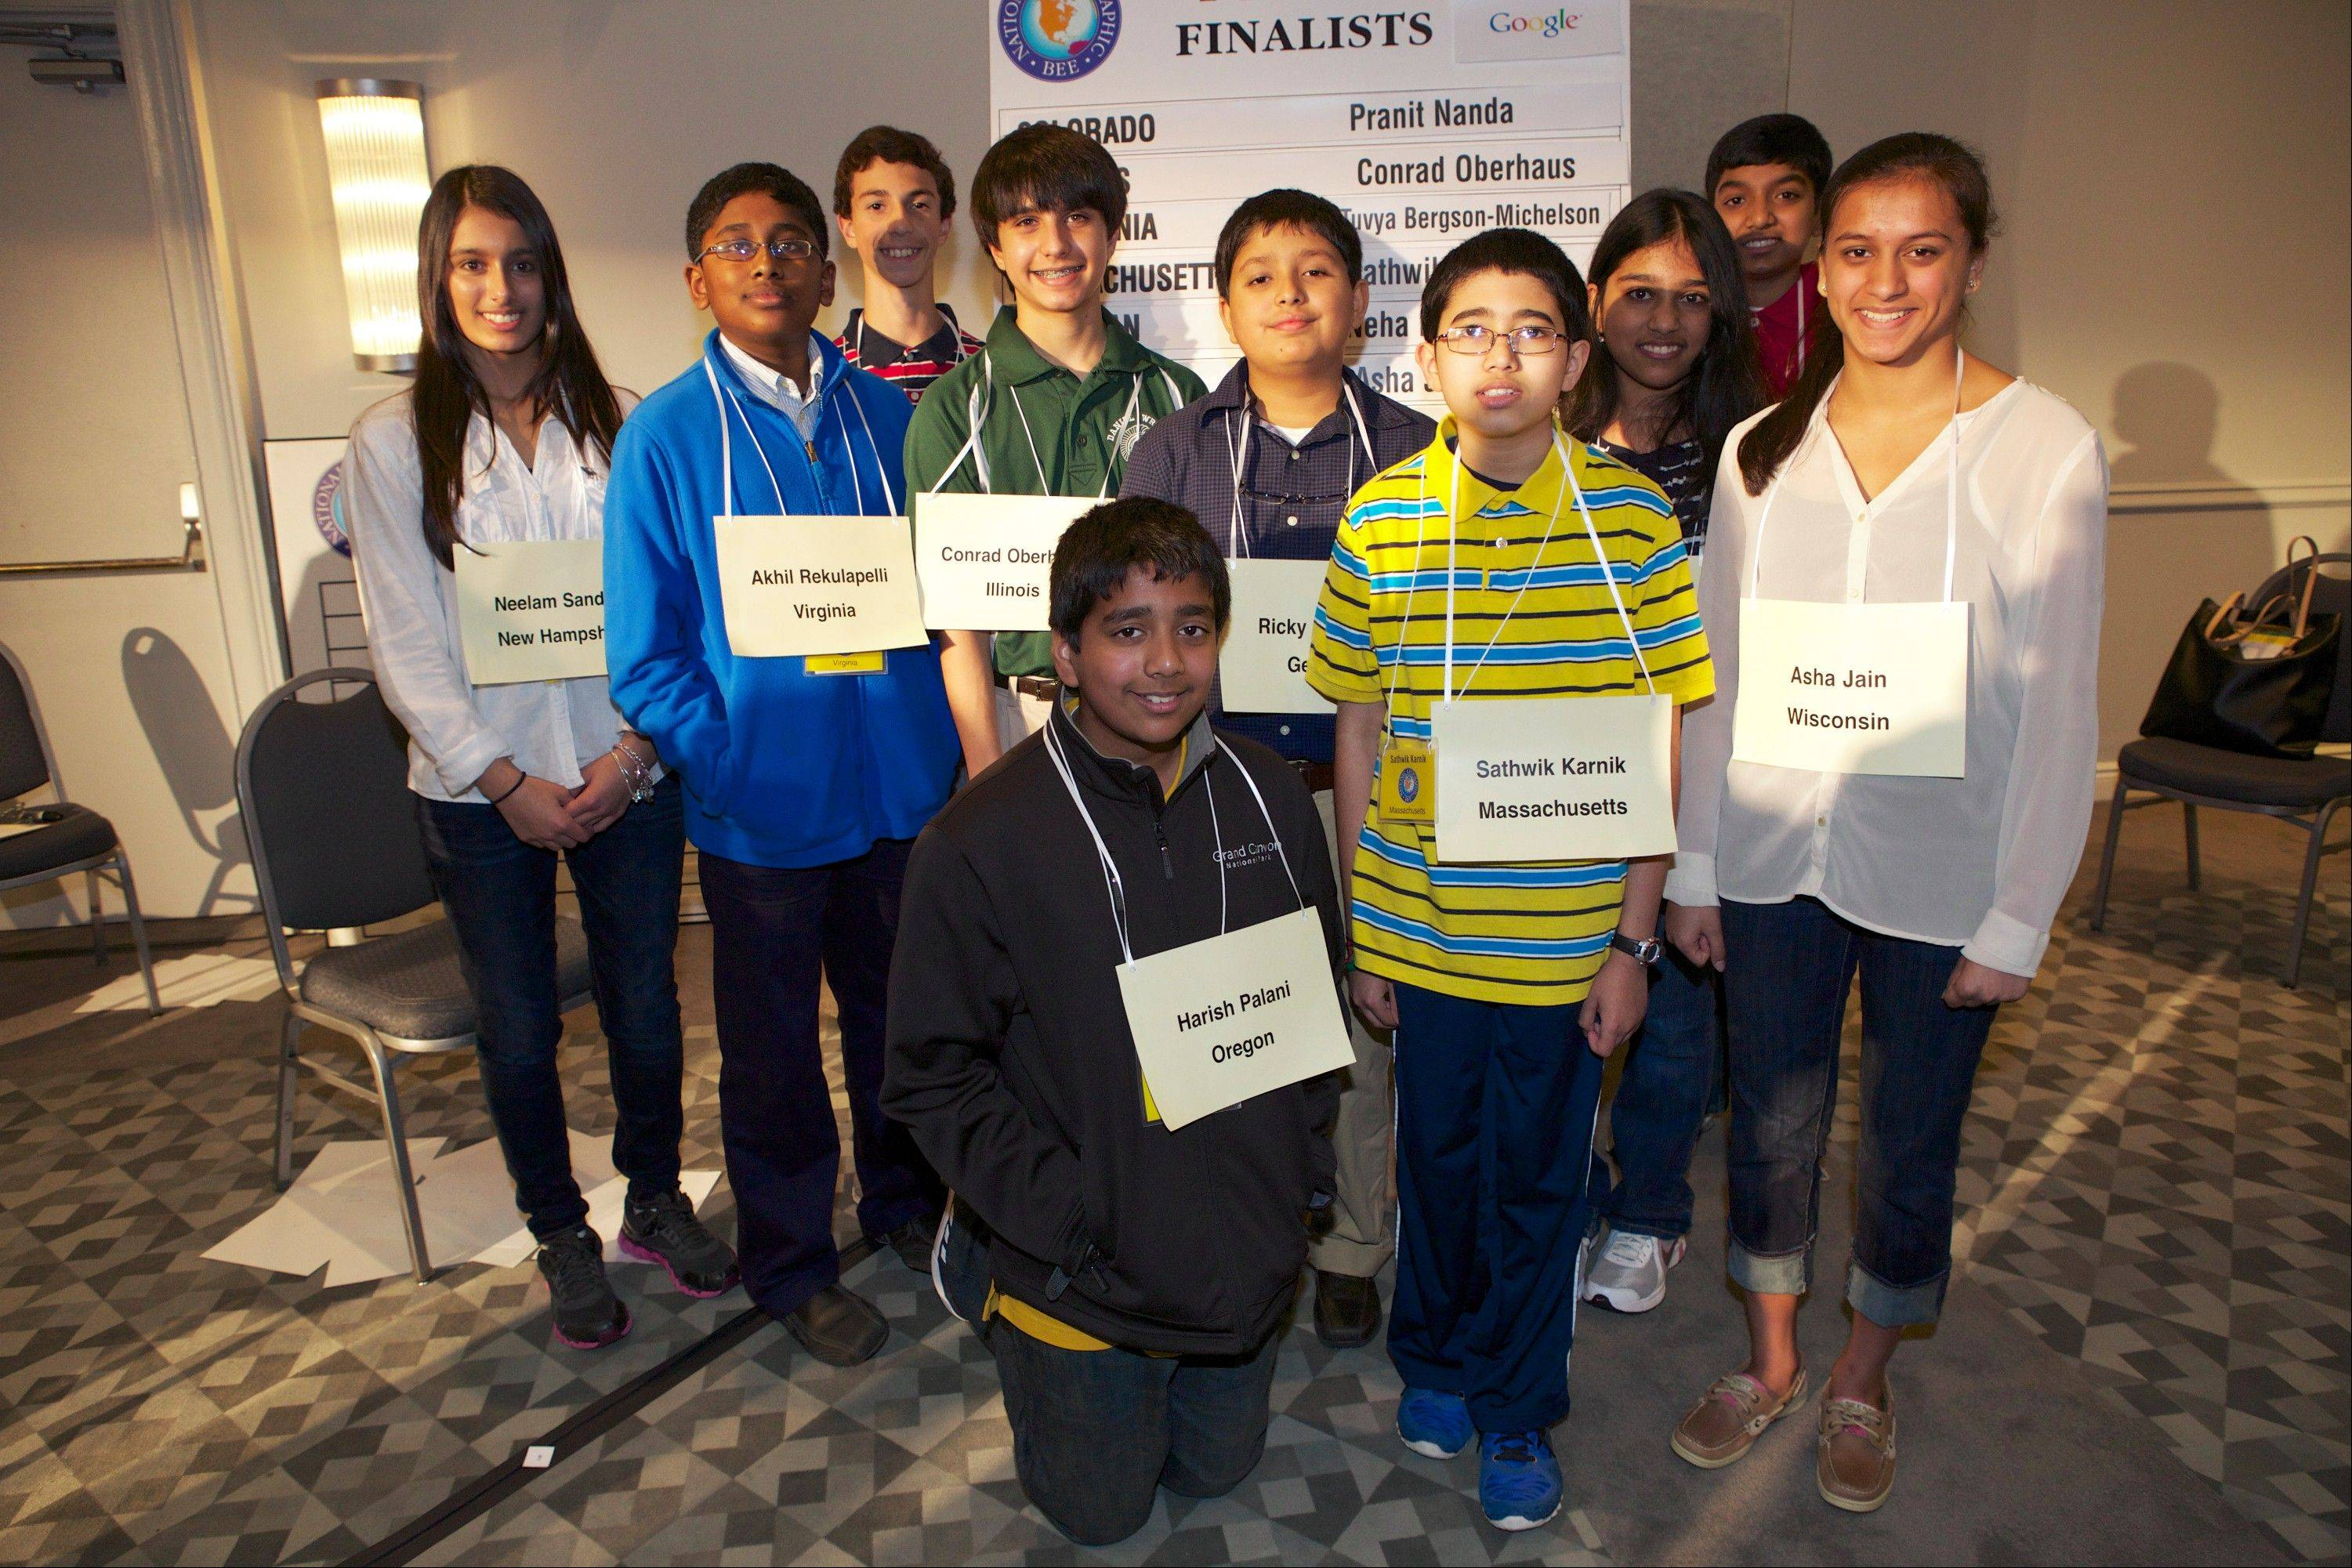 These are the 10 finalists in the 2013 National Geographic Bee, including Lincolnshire student Conrad Oberhaus in the green shirt.